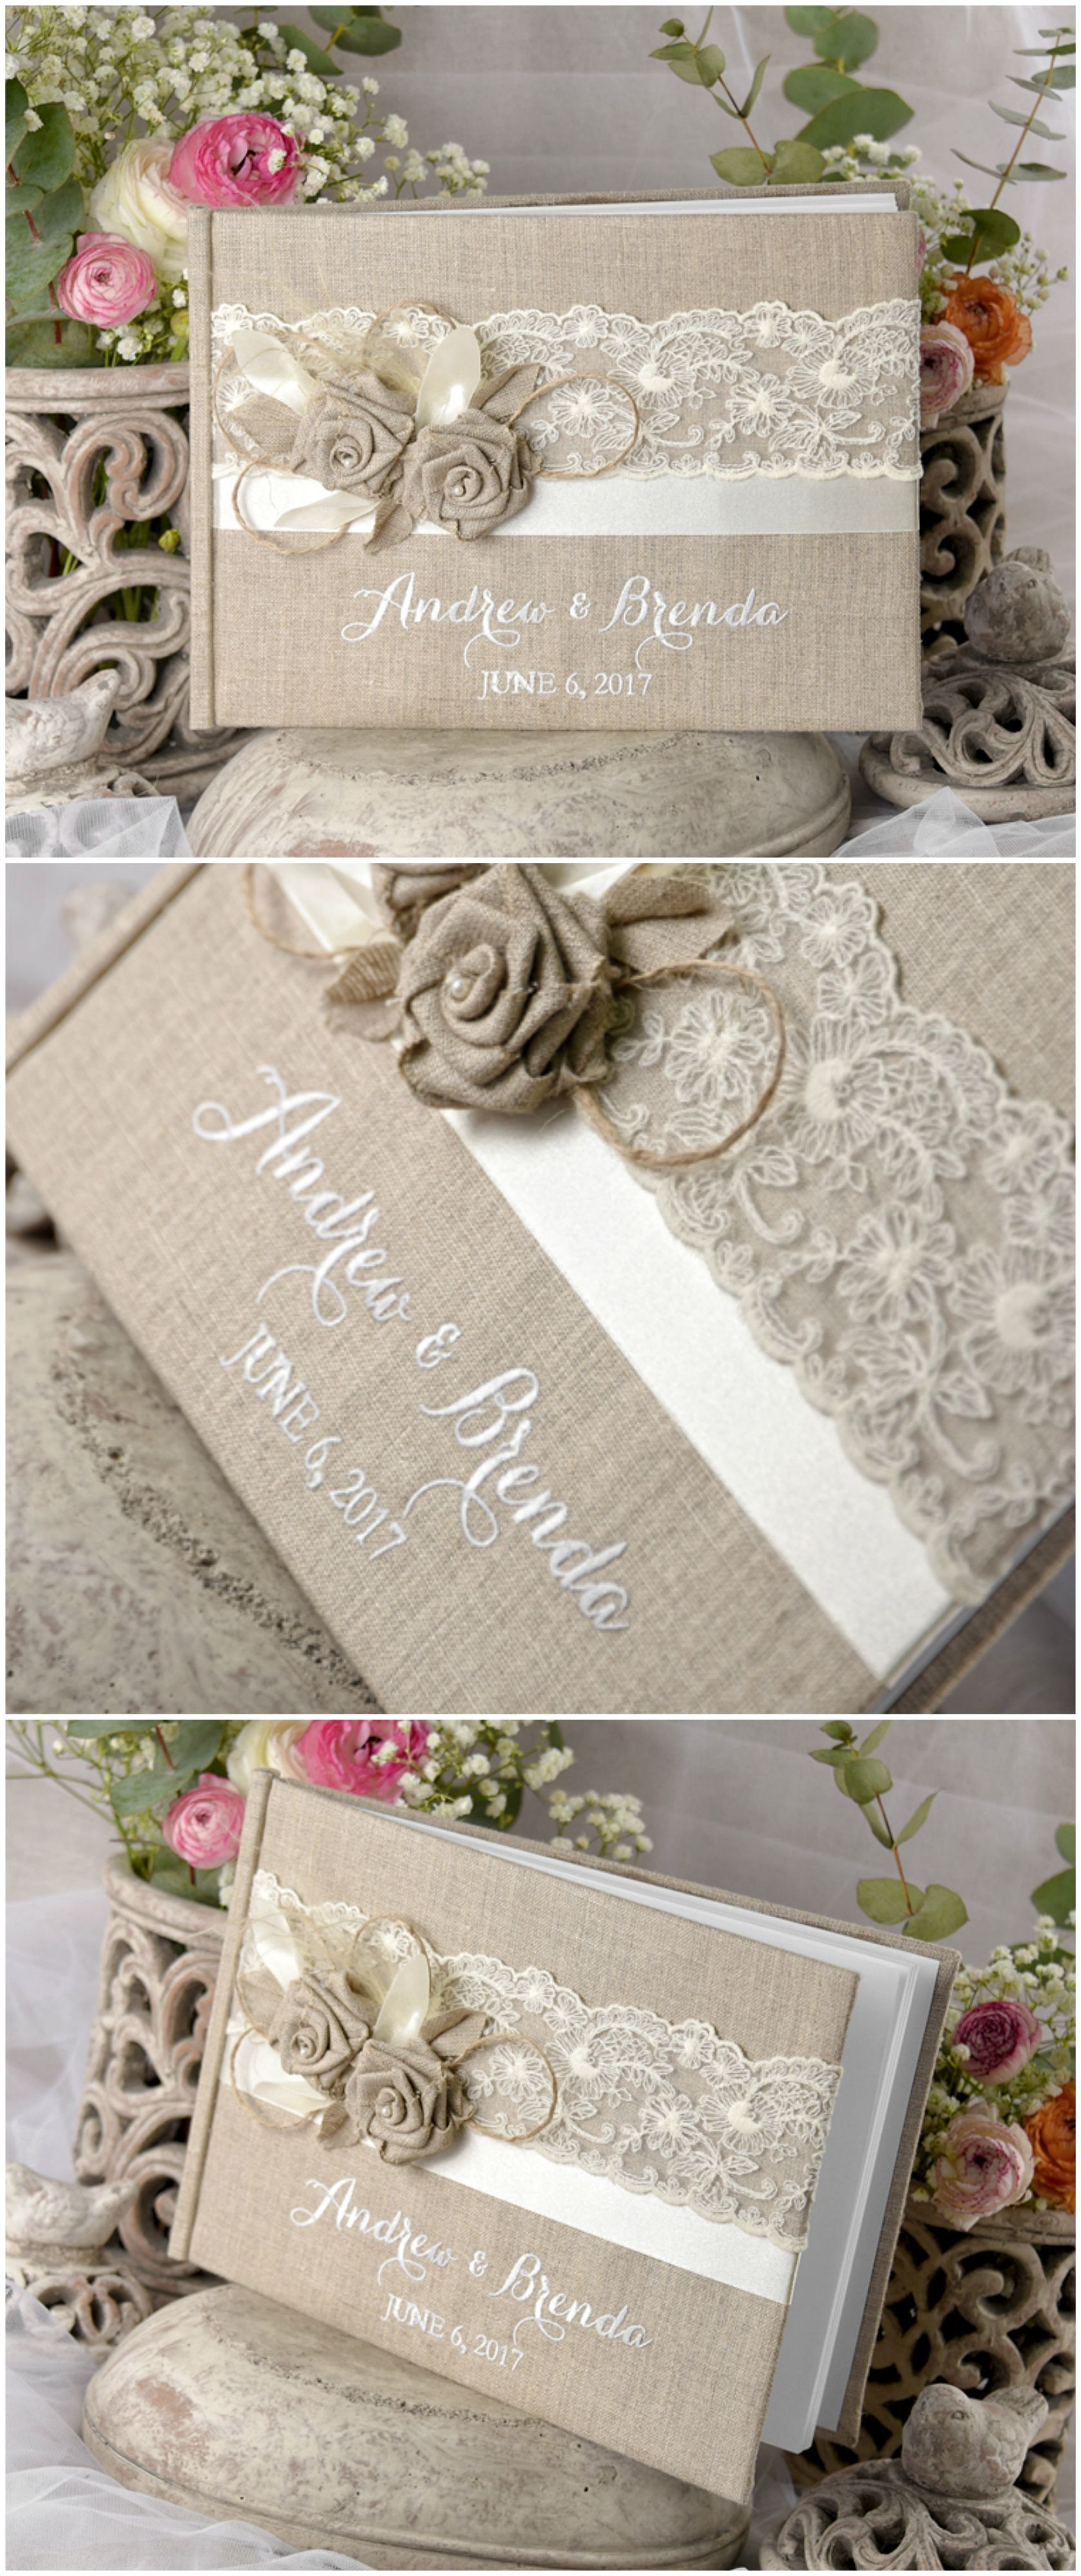 Shabby Chic wedding guest book with custom embroidery wedding